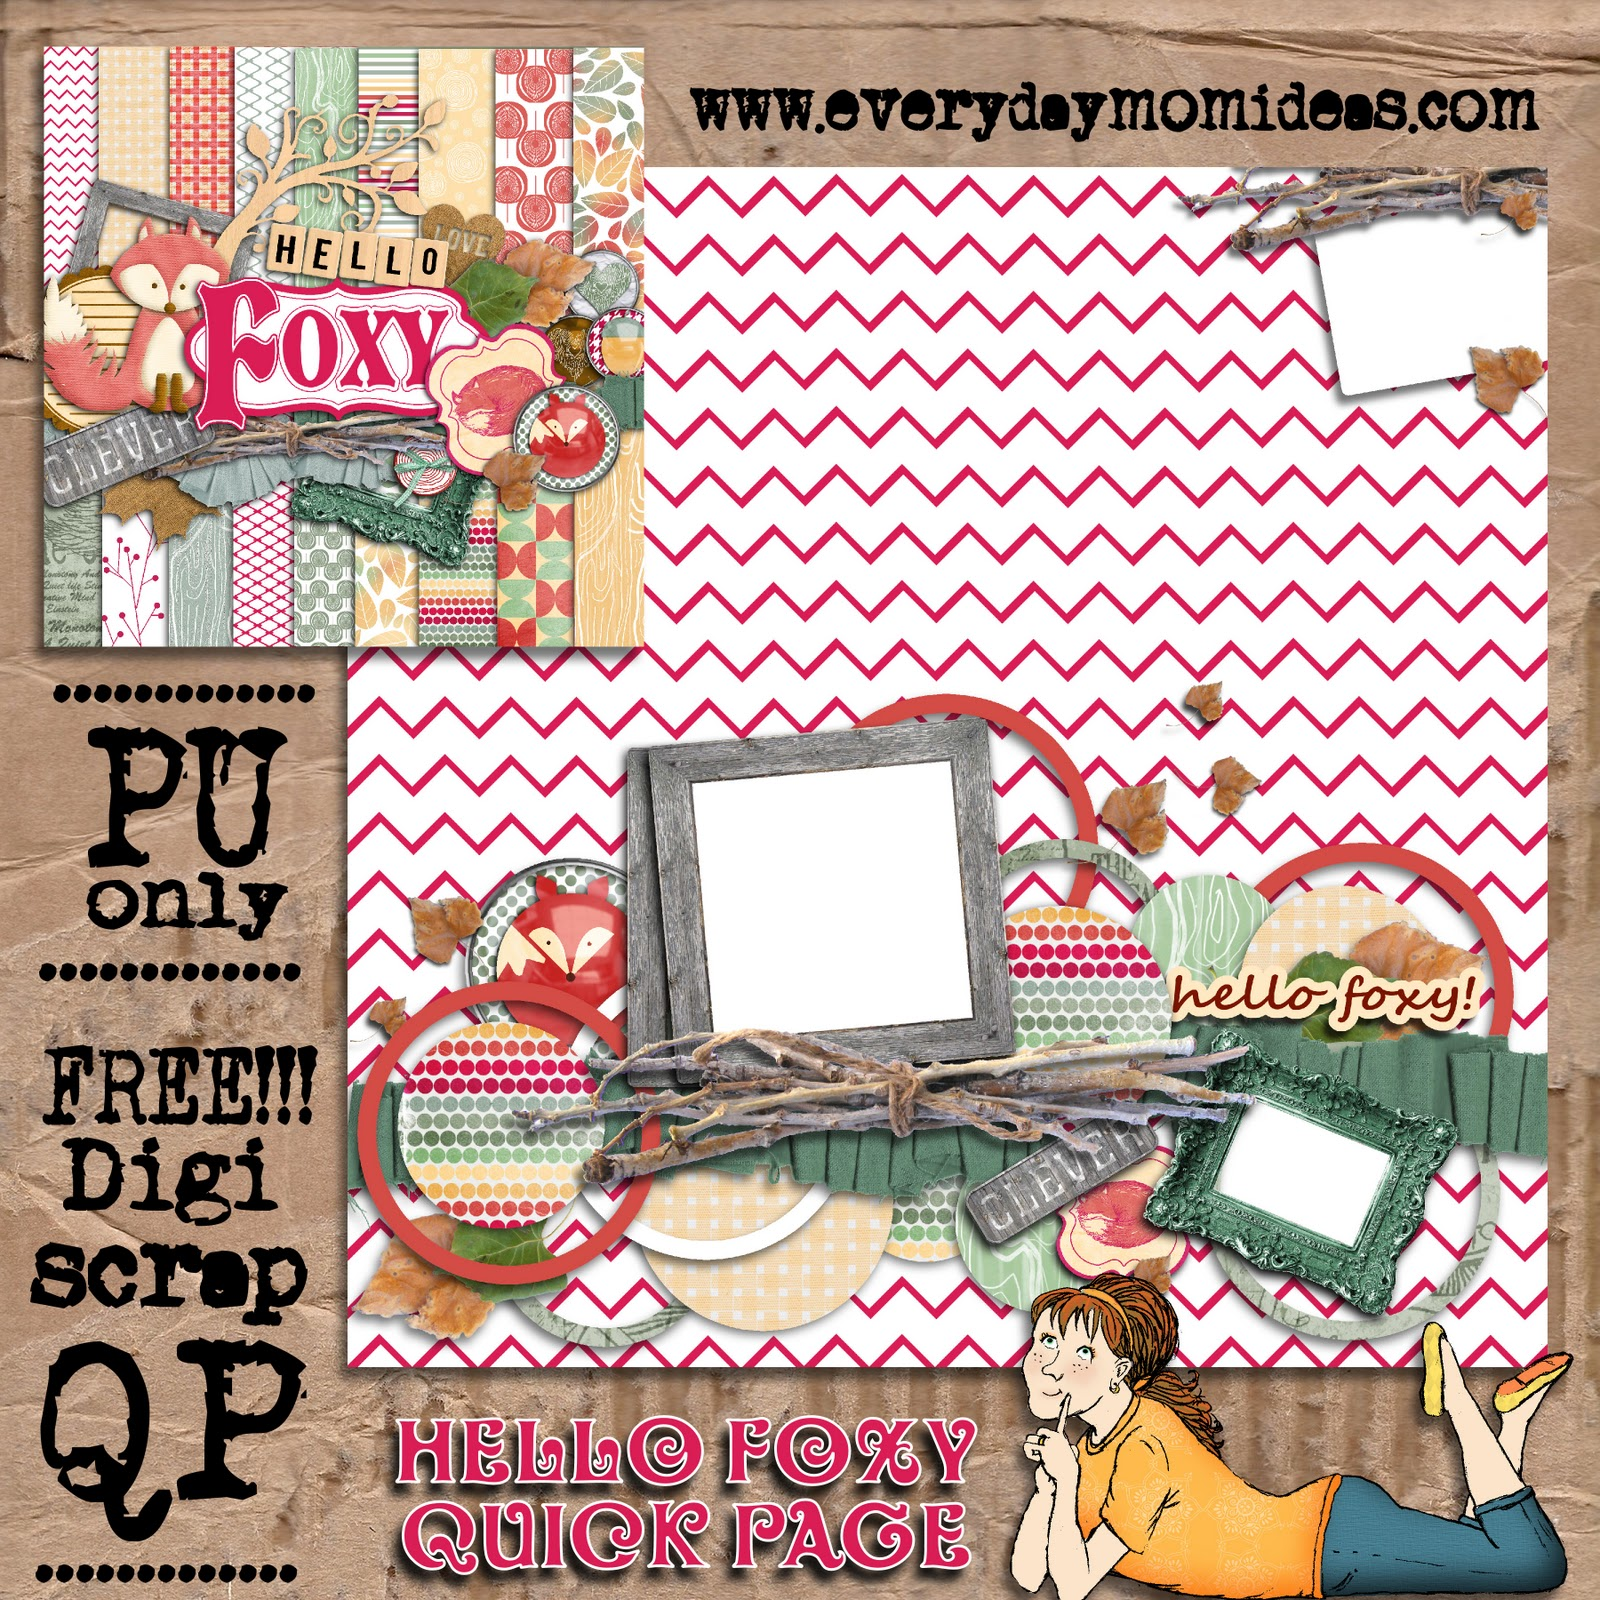 Digital scrapbooking kits free all about scrapbooking ideas - Hello Foxy Free Quick Page Download Everyday Mom Ideas Ive Created A Coordinating Quick Page To